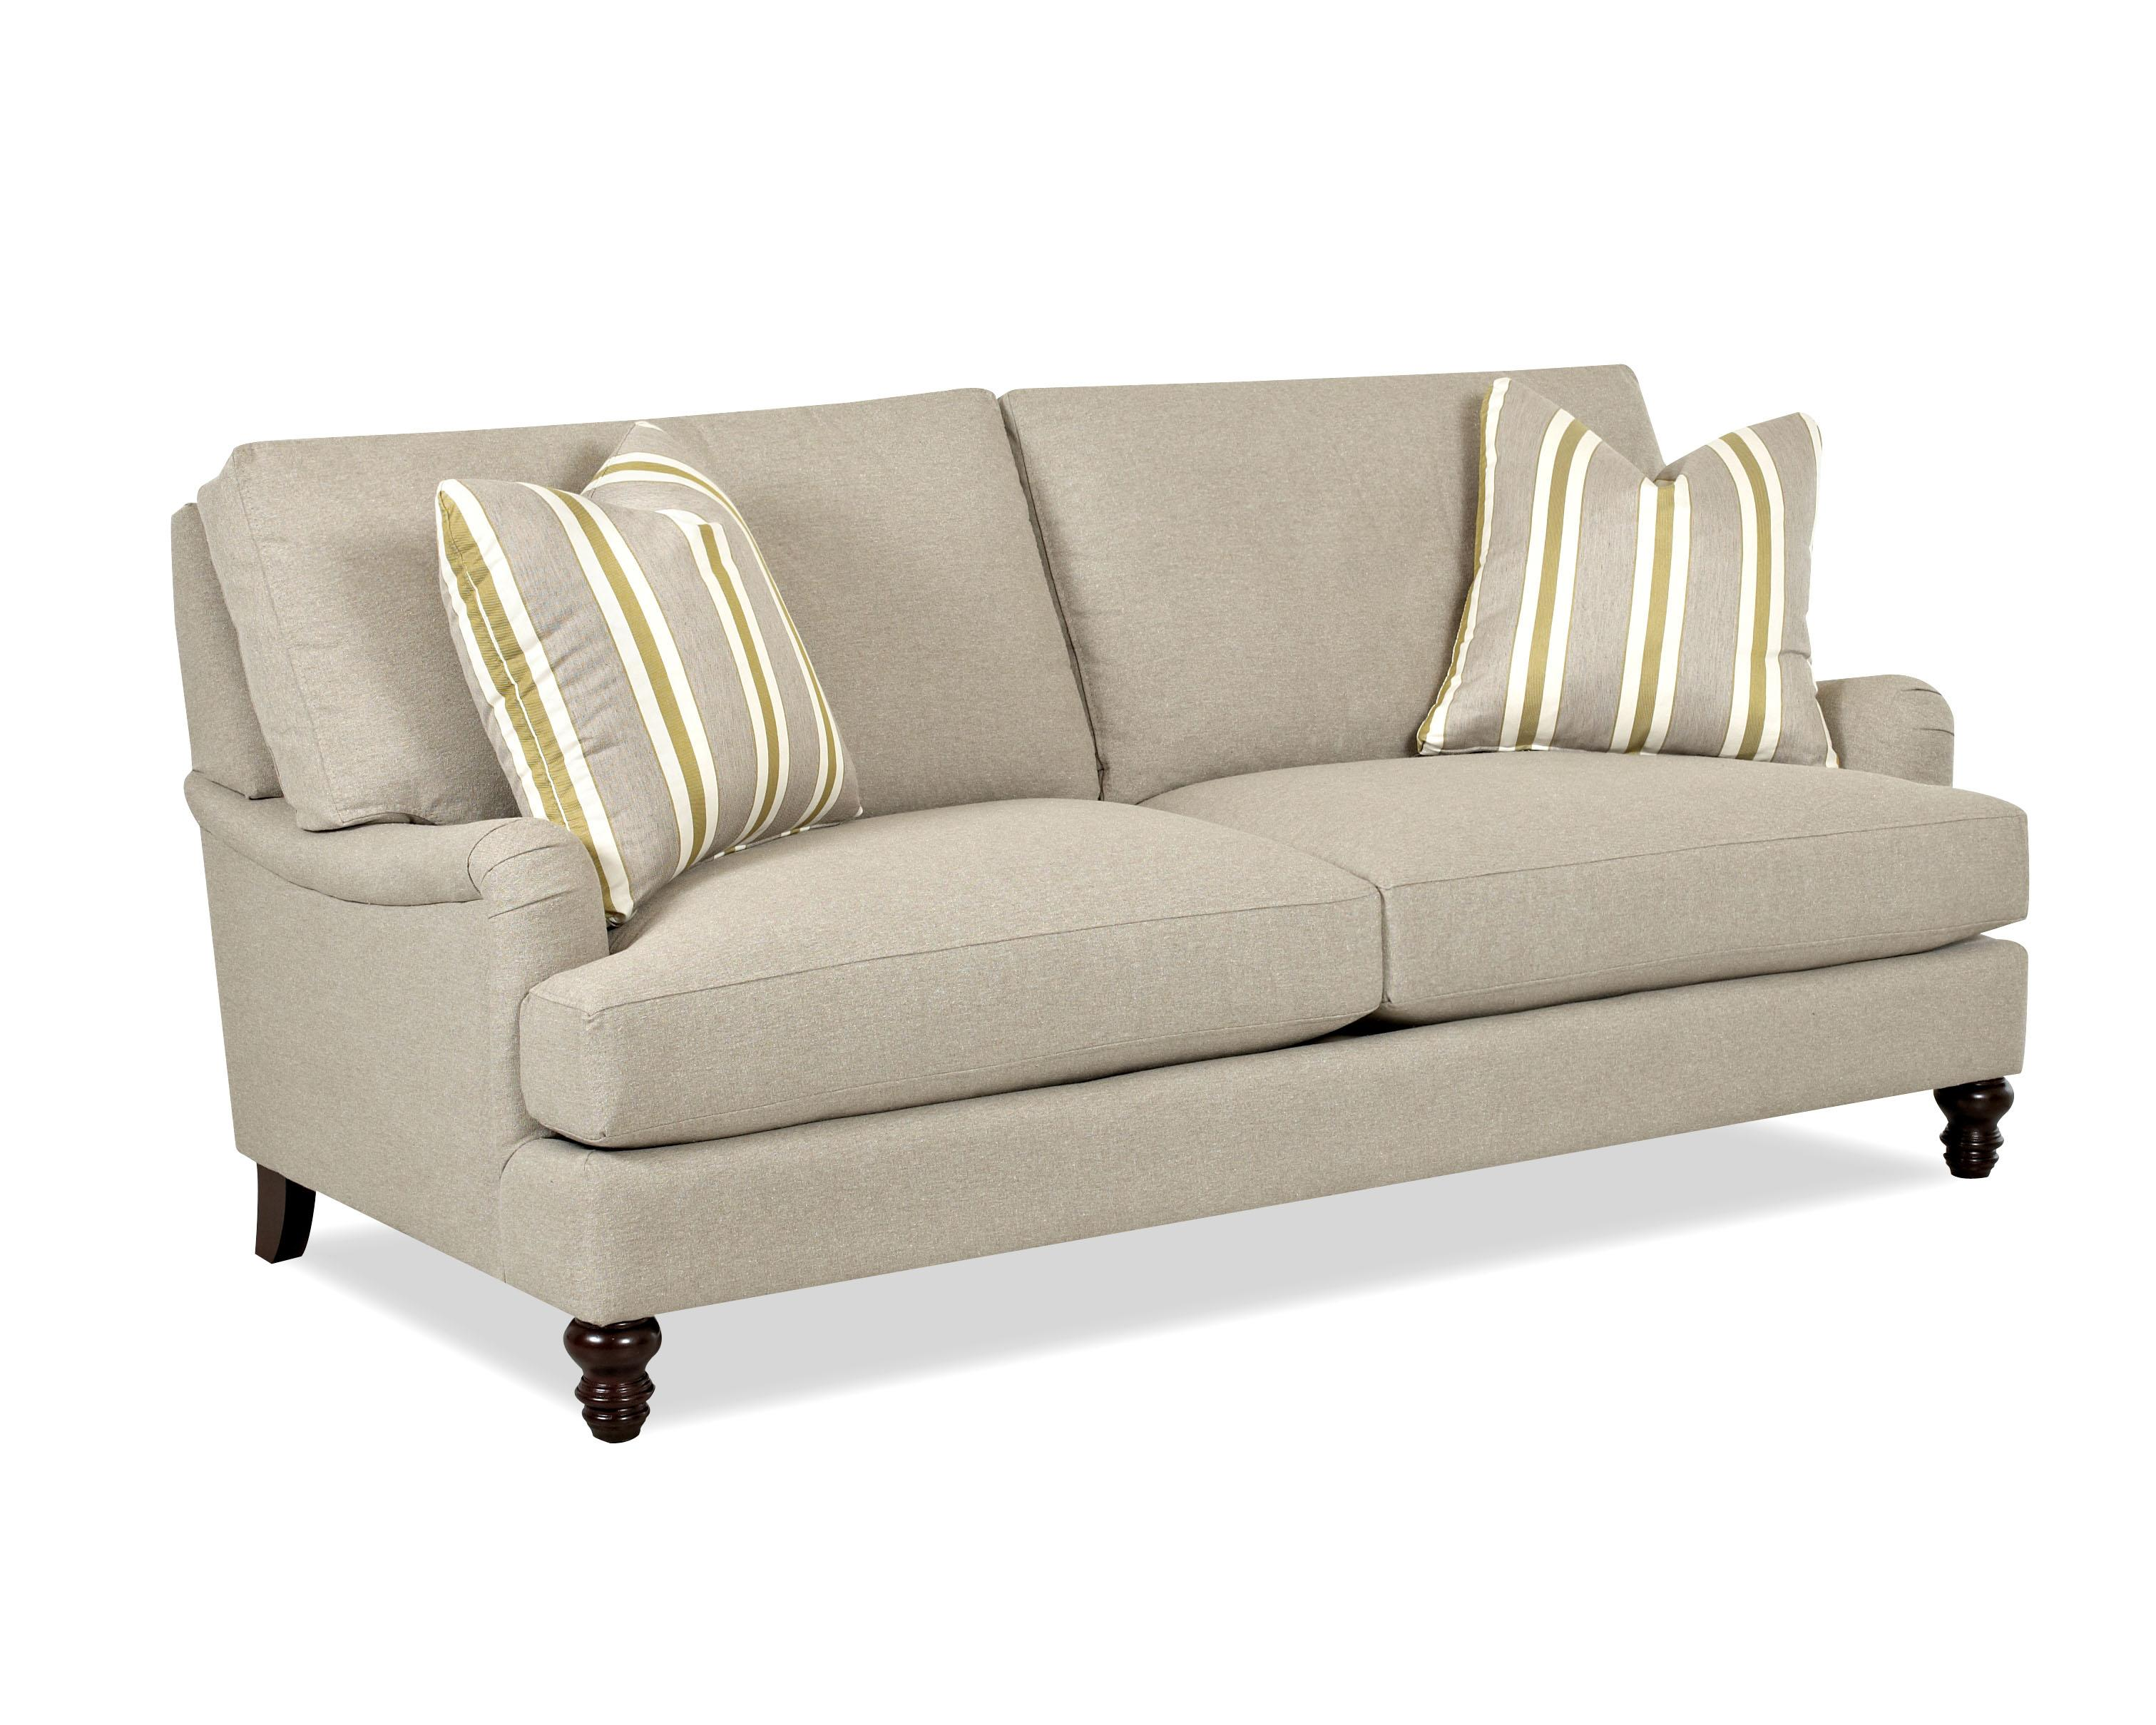 Loewy Sofa by Klaussner at Van Hill Furniture